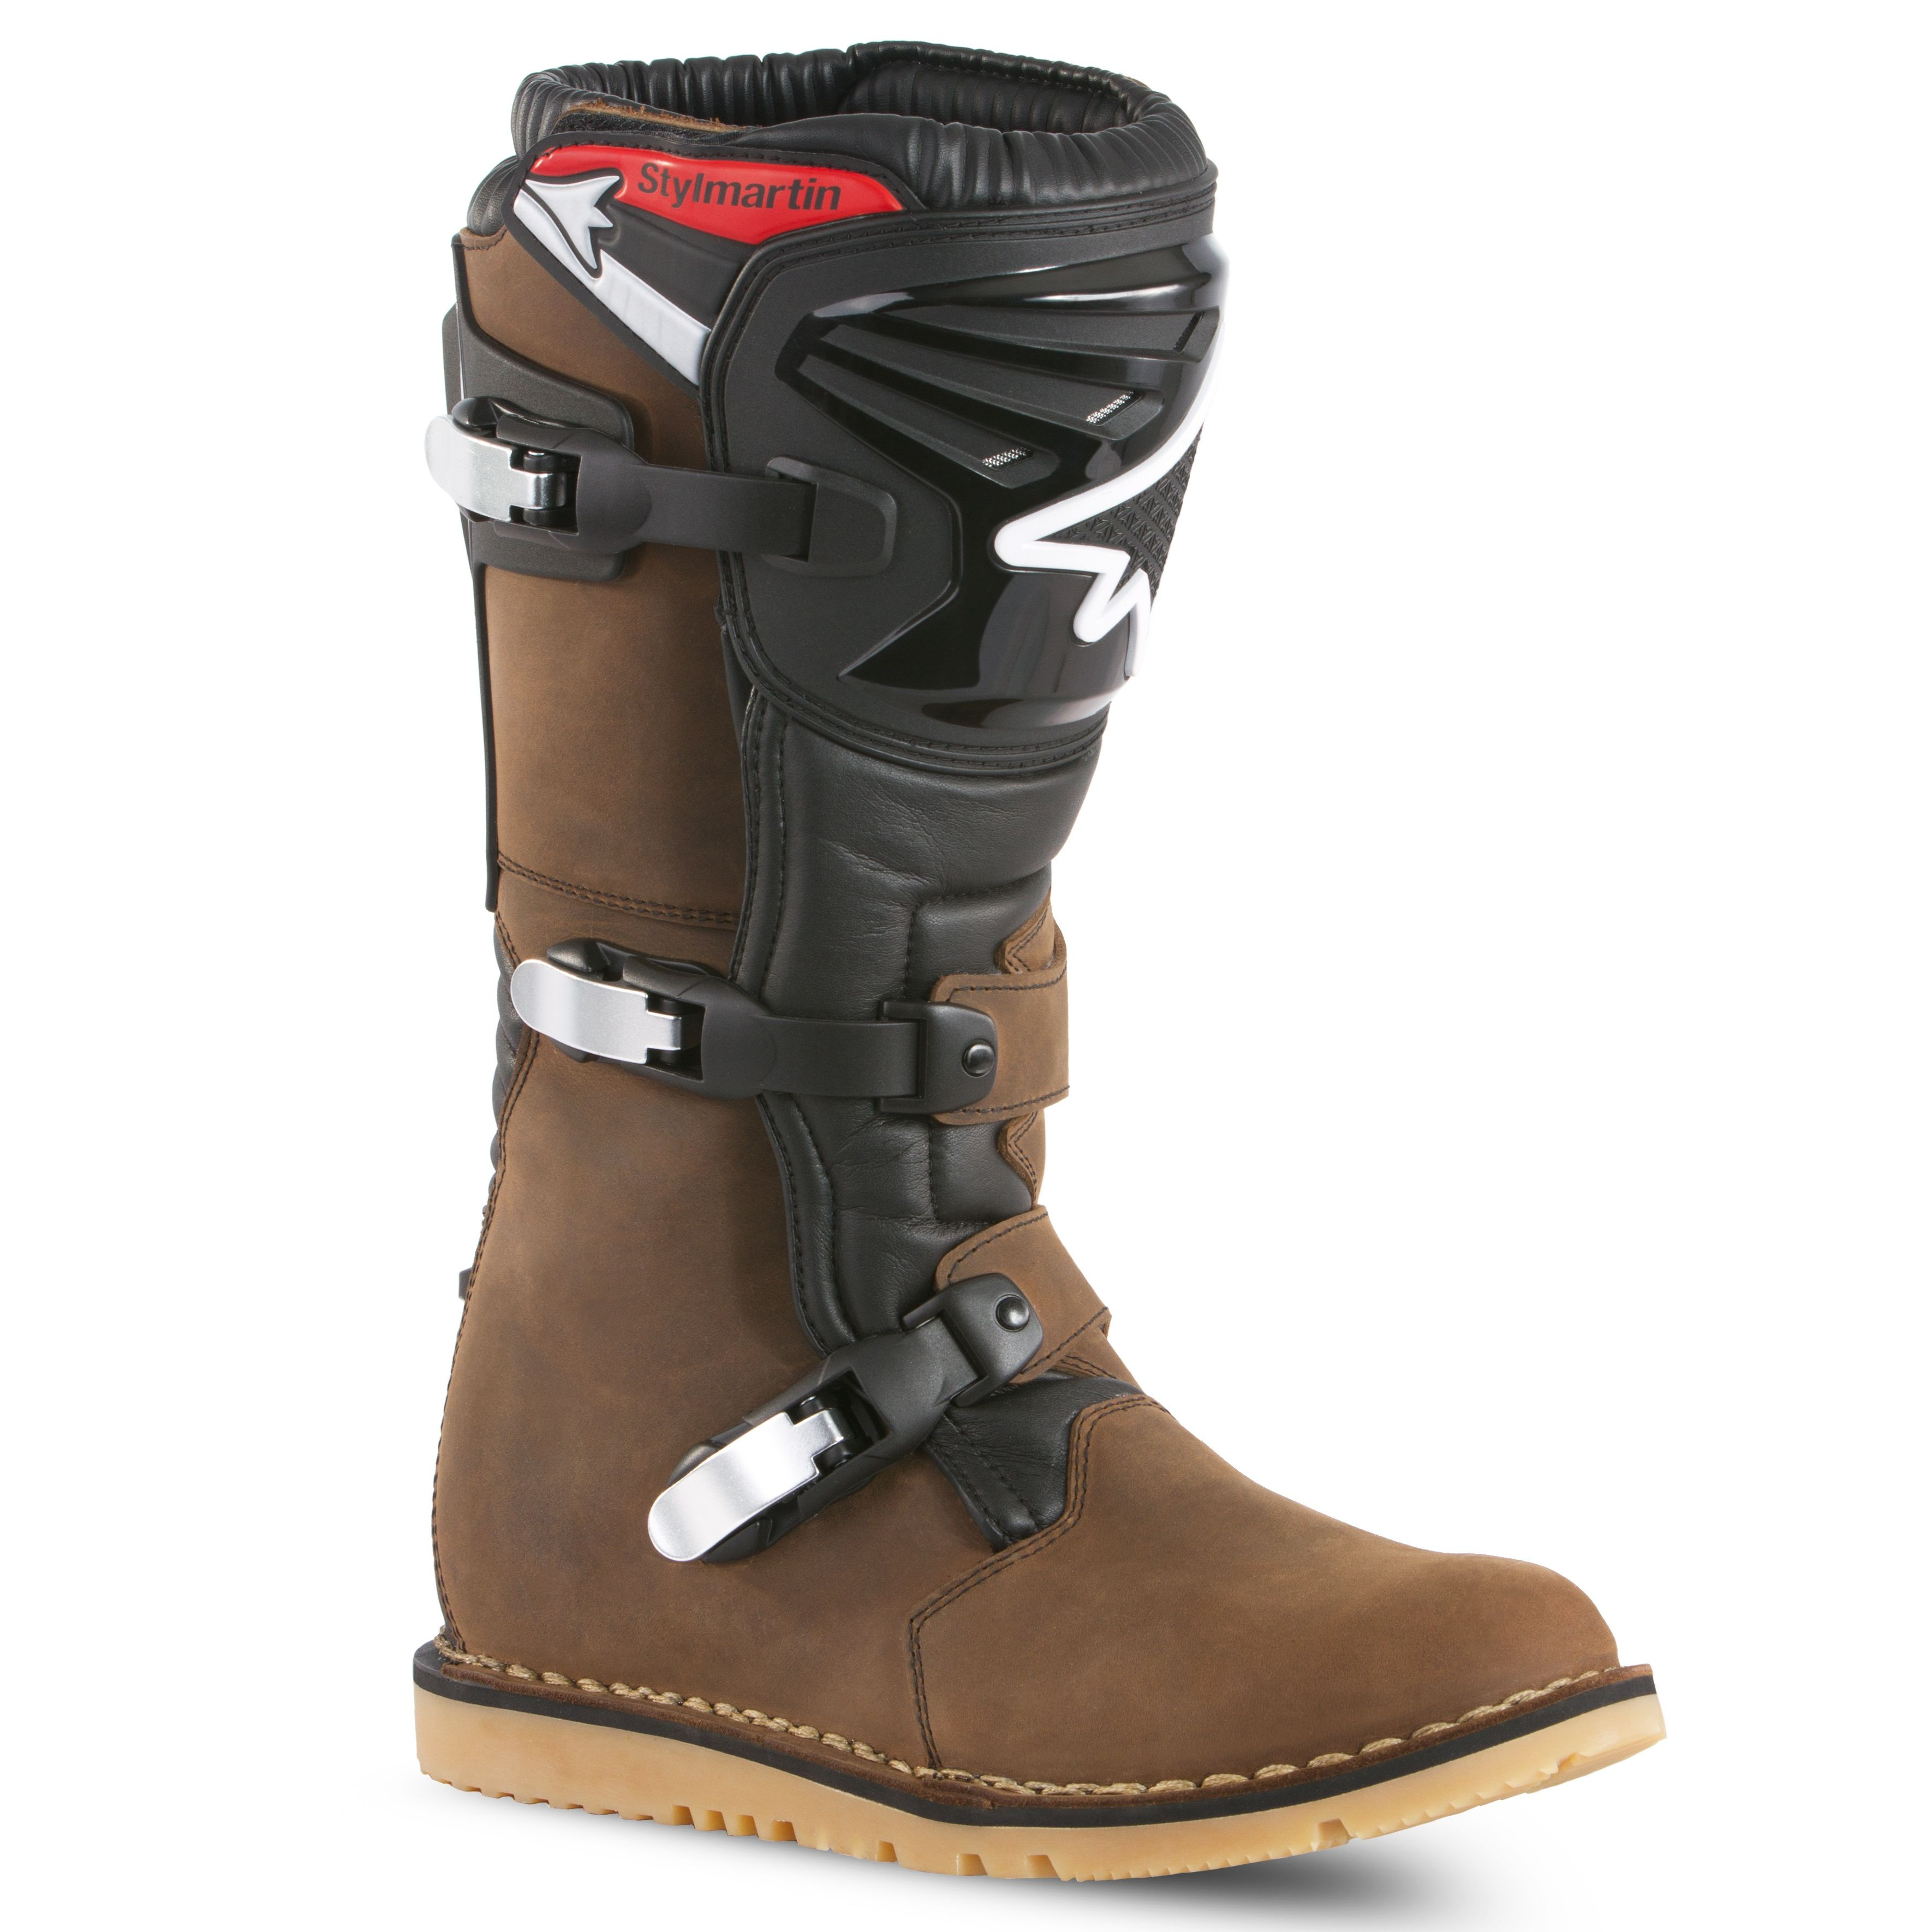 Bottes Cross Stylmartin Impact Rs